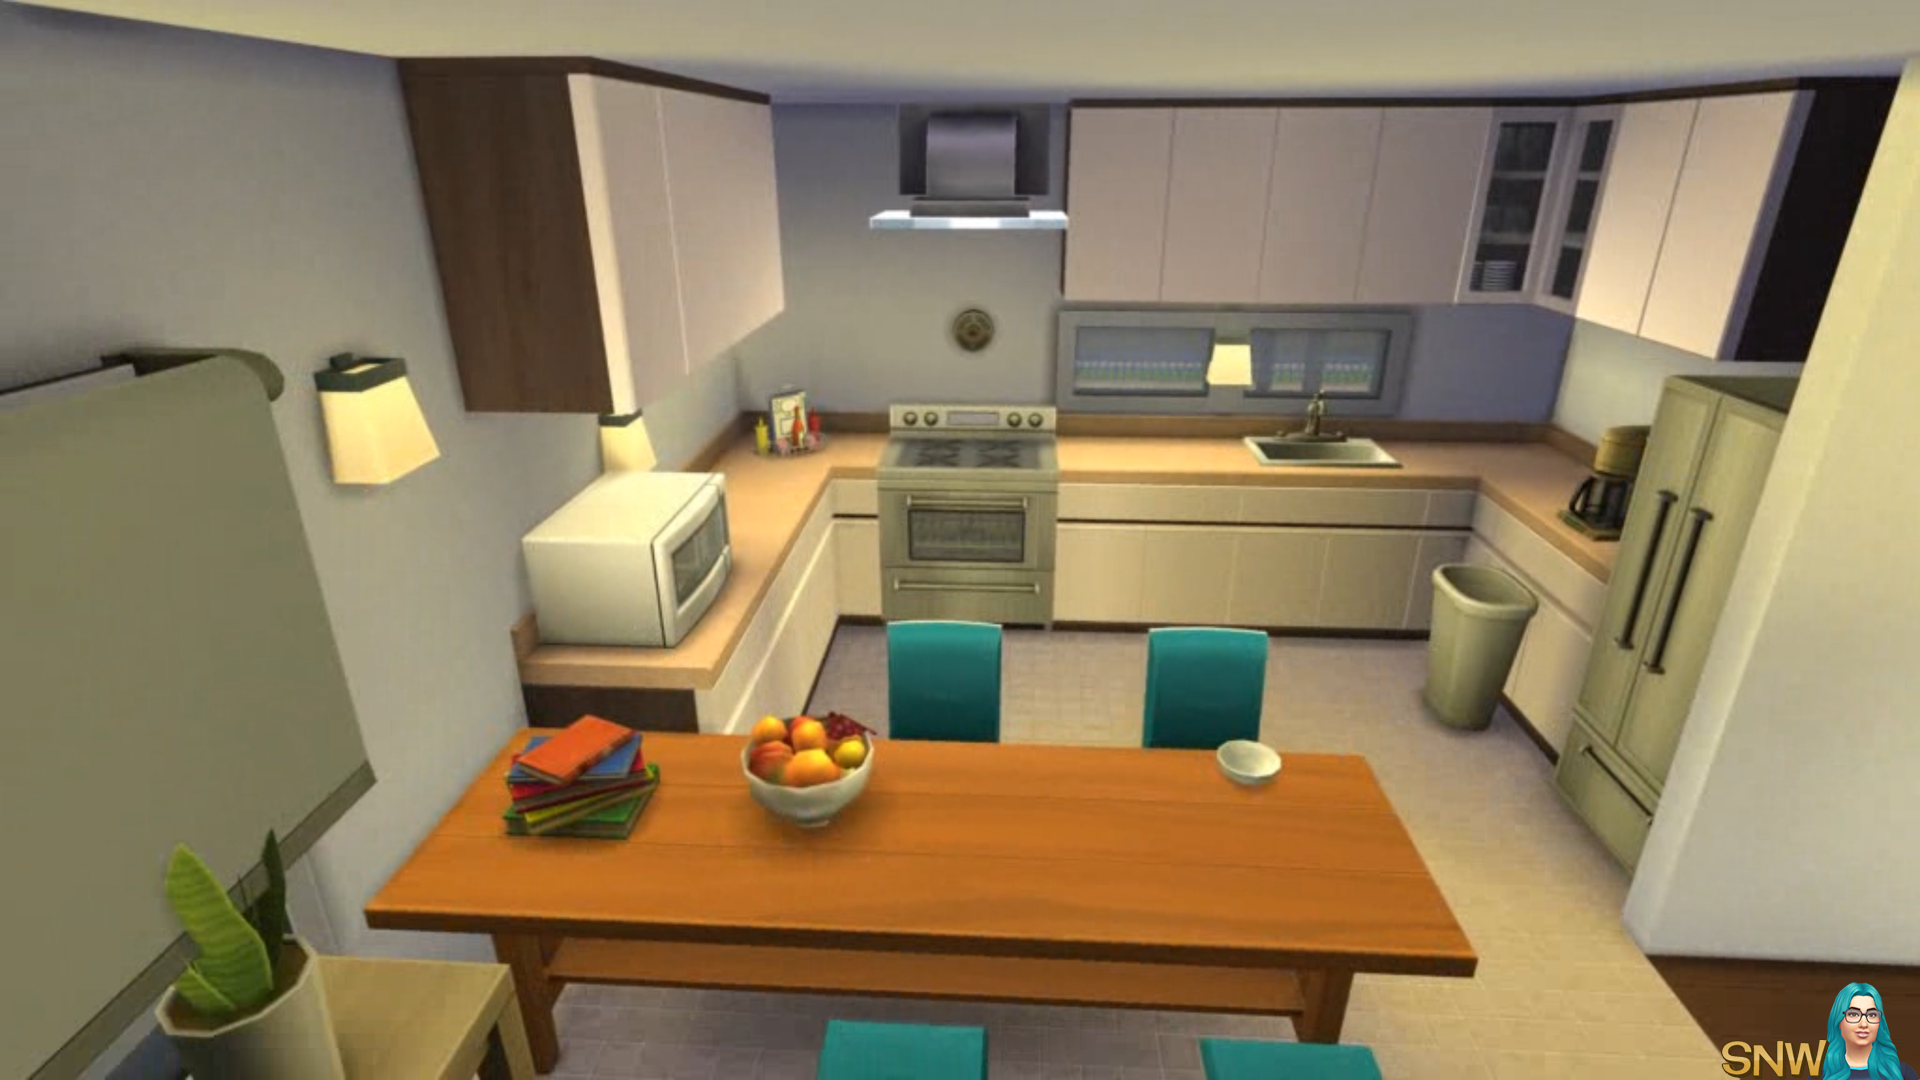 Pleasing My Real Life House In The Sims 4 Snw Simsnetwork Com Download Free Architecture Designs Scobabritishbridgeorg